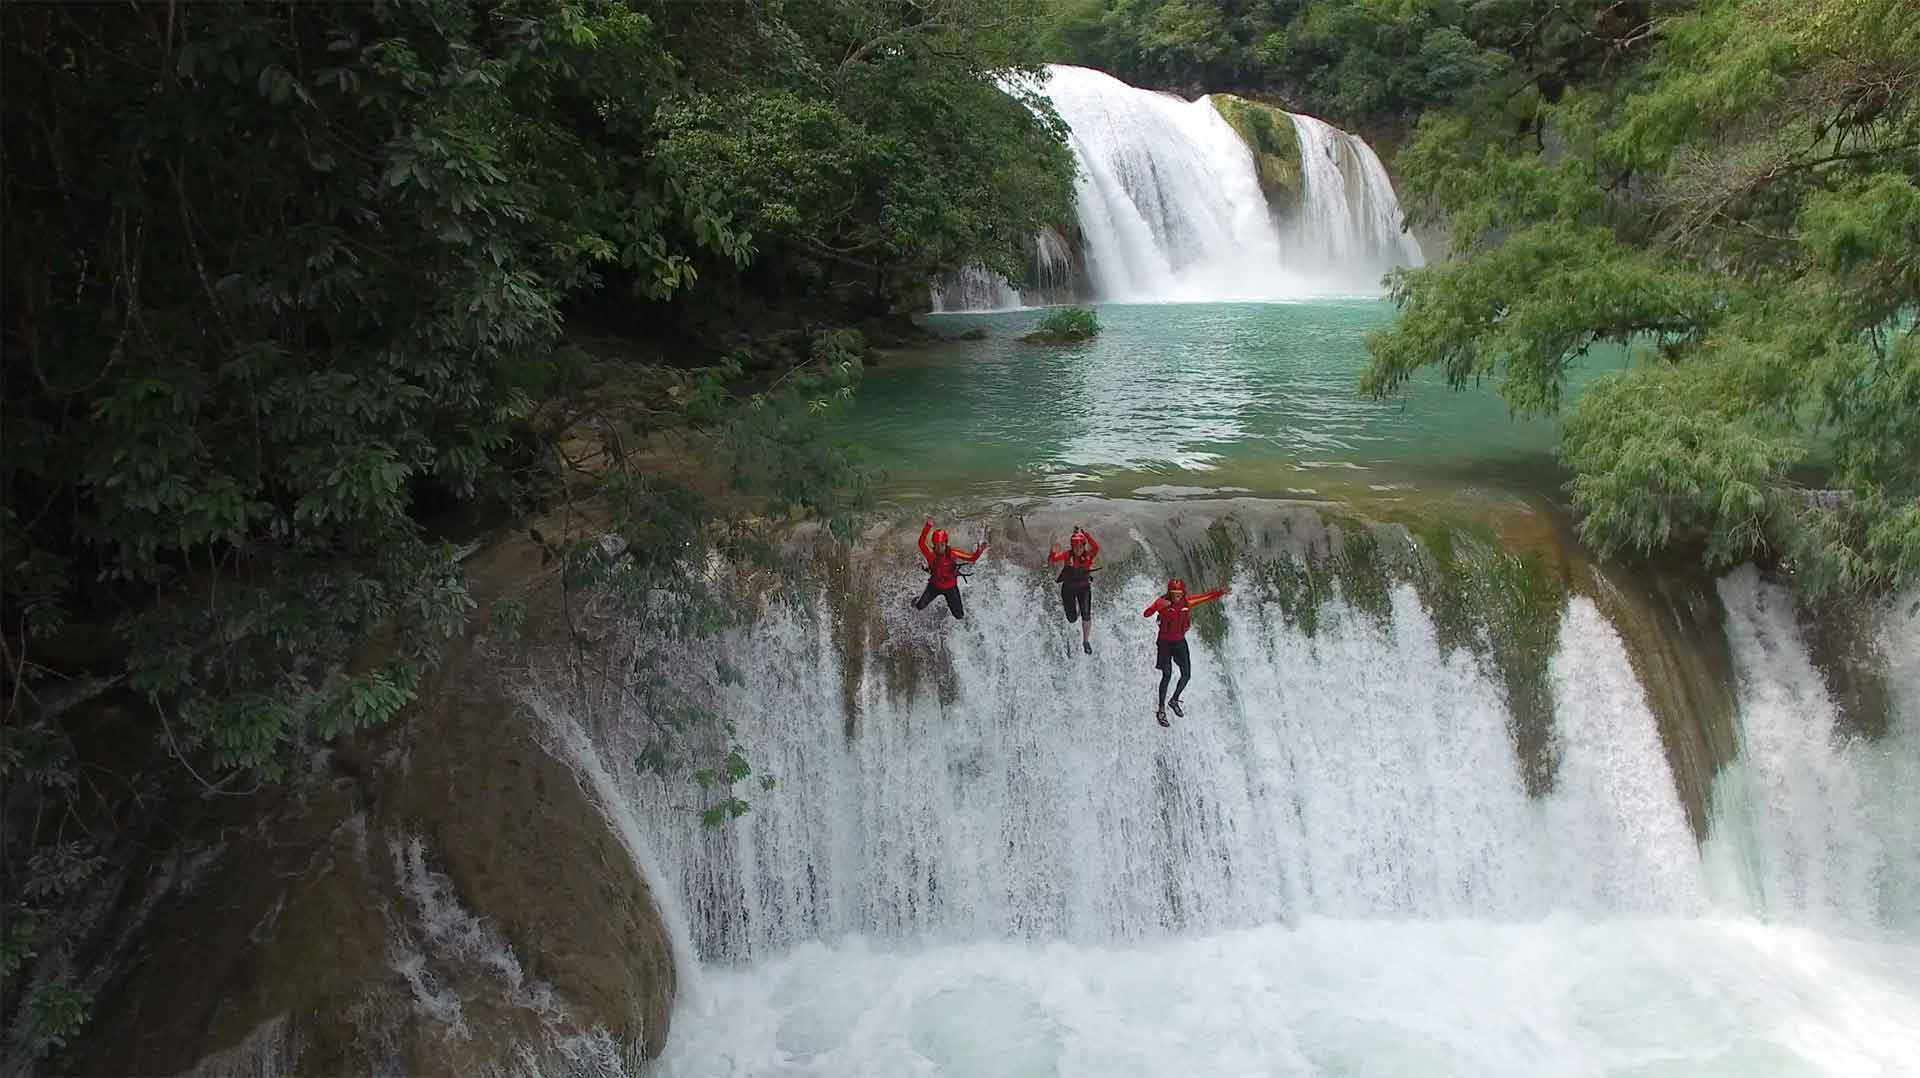 Waterfall jumping. Image courtesy of Huaxteca.com